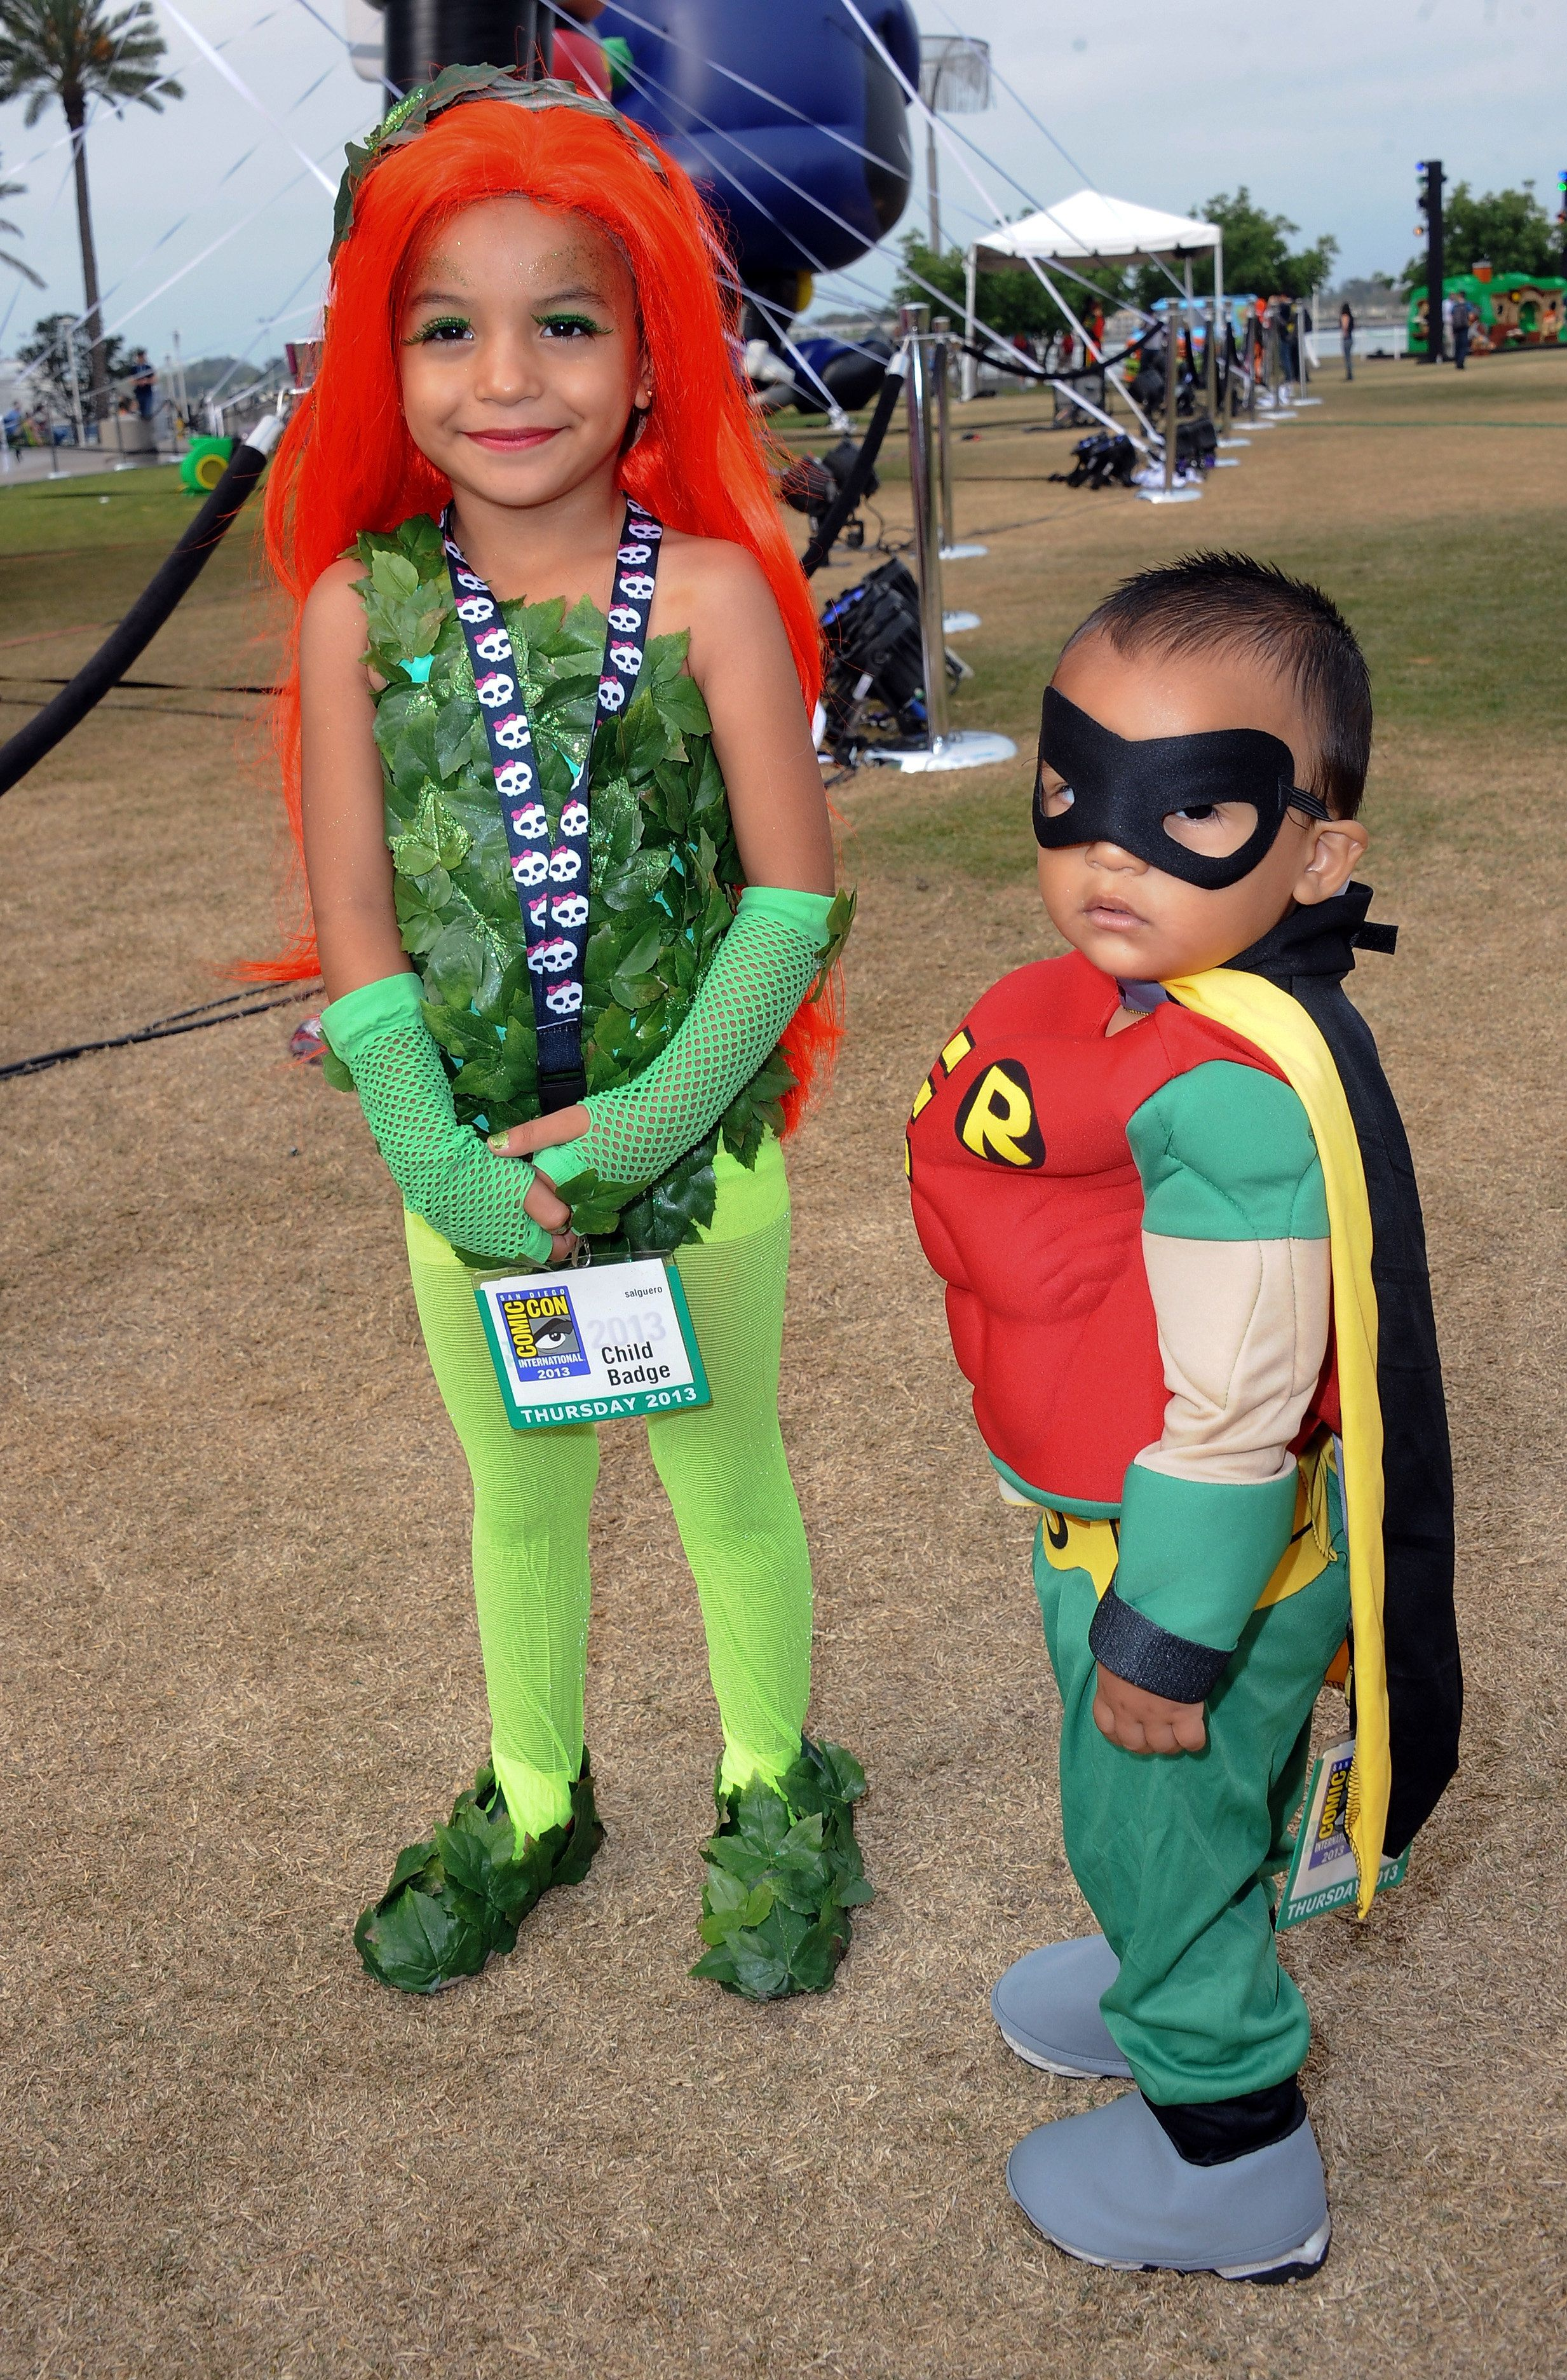 SAN DIEGO CA - JULY 18 Cosplayers dressed as Poison Ivy and Robin attend  sc 1 st  HuffPost & 30 Of The Littlest Fans Geeking Out At Comic Cons | HuffPost